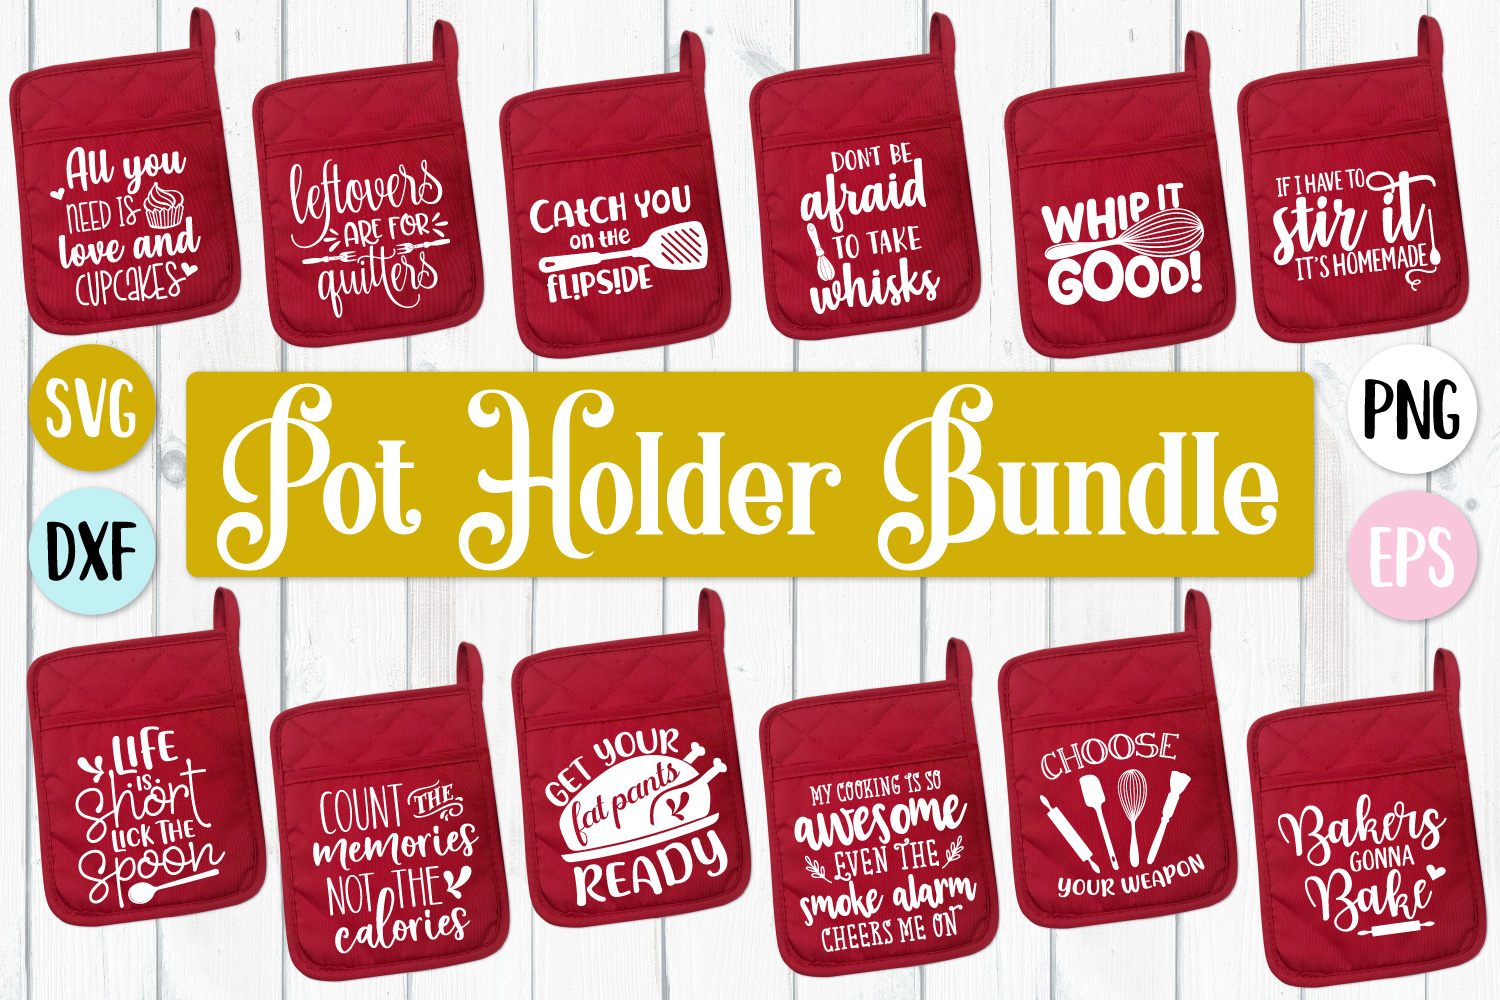 Pot Holder Quotes Bundle - SVG, PNG, DXF, EPS example image 1